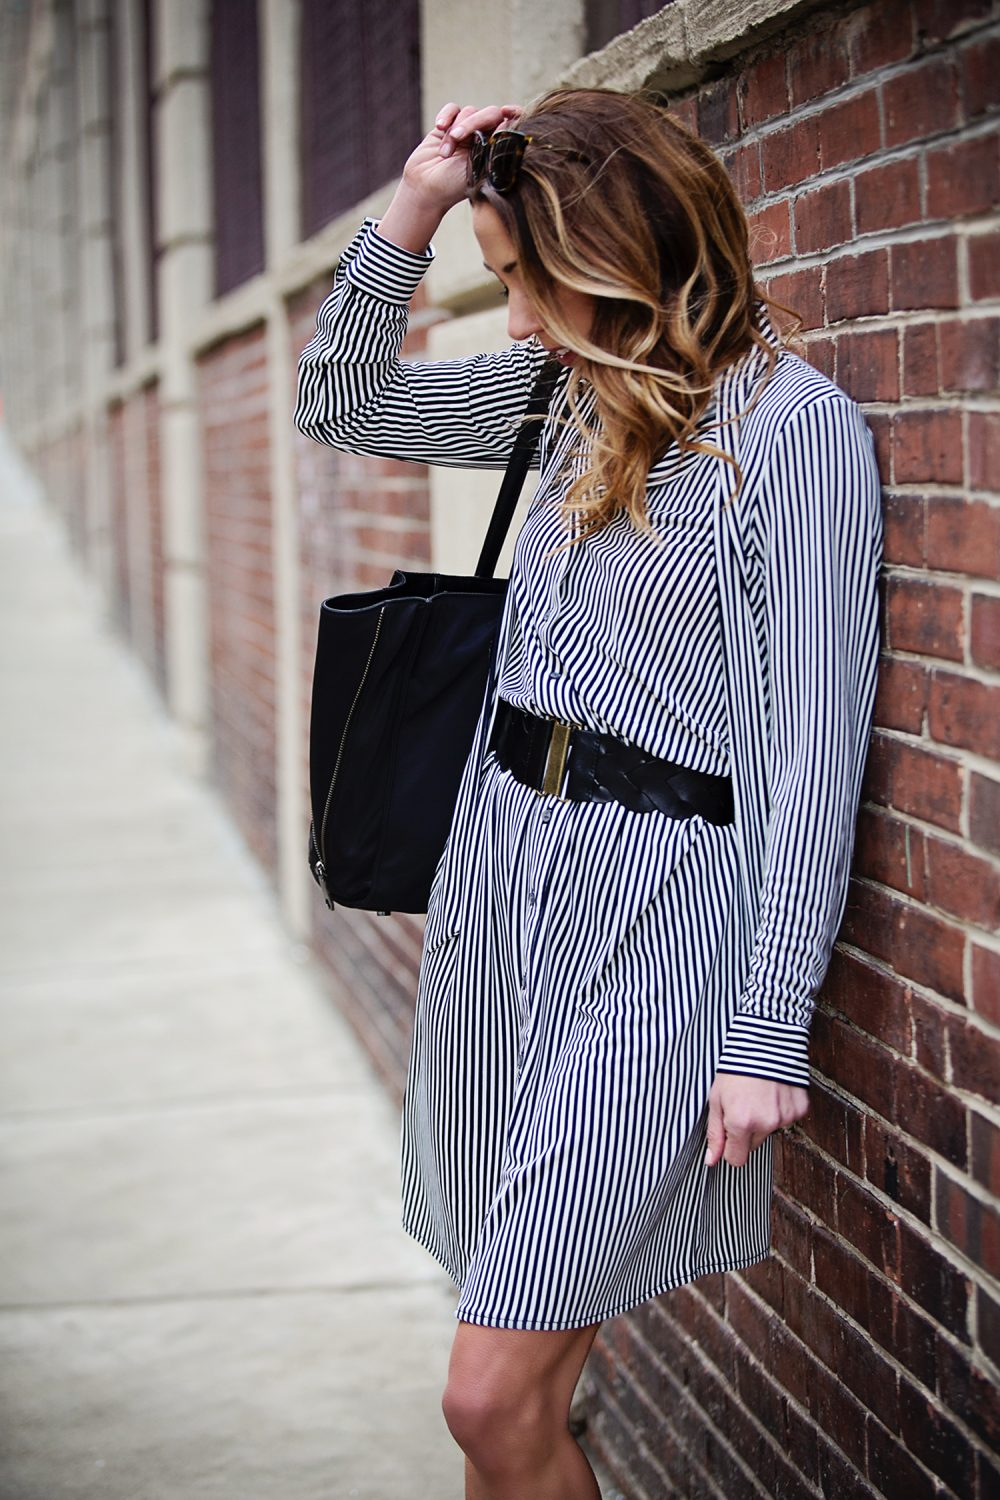 The Motherchic wearing Ann Taylor workwear dress